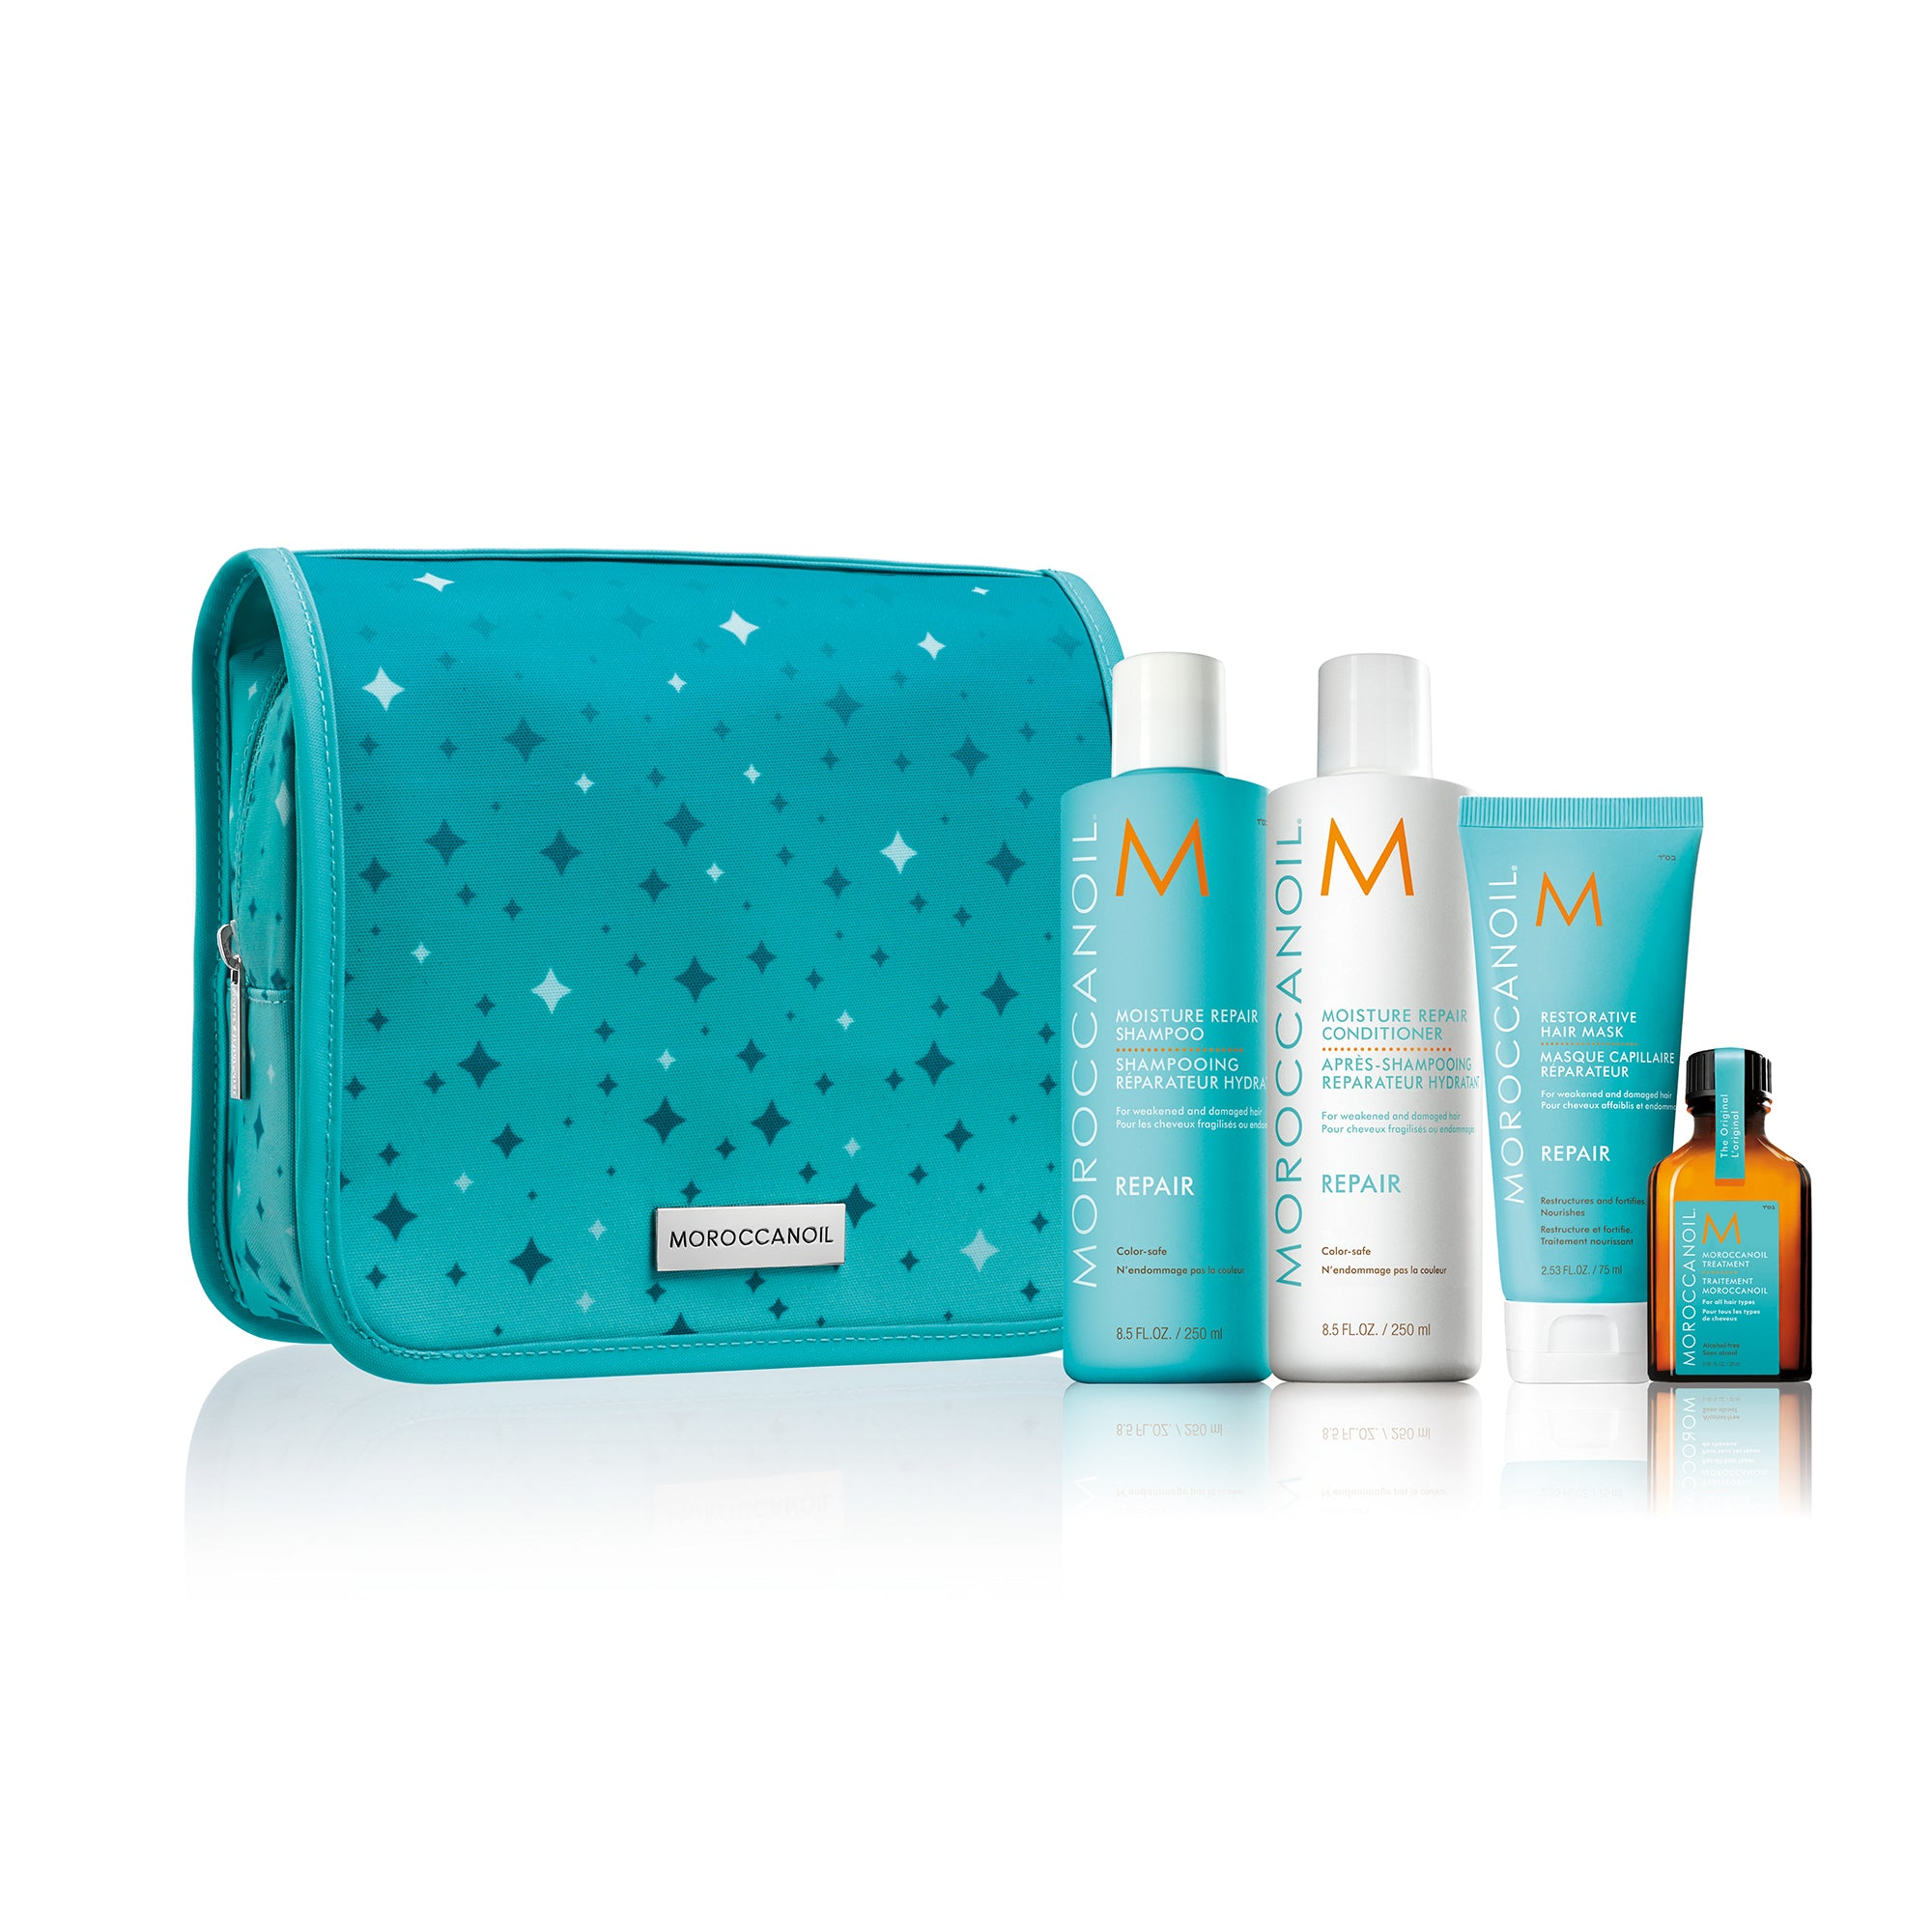 Moroccanoil Repair Christmas Gift Set